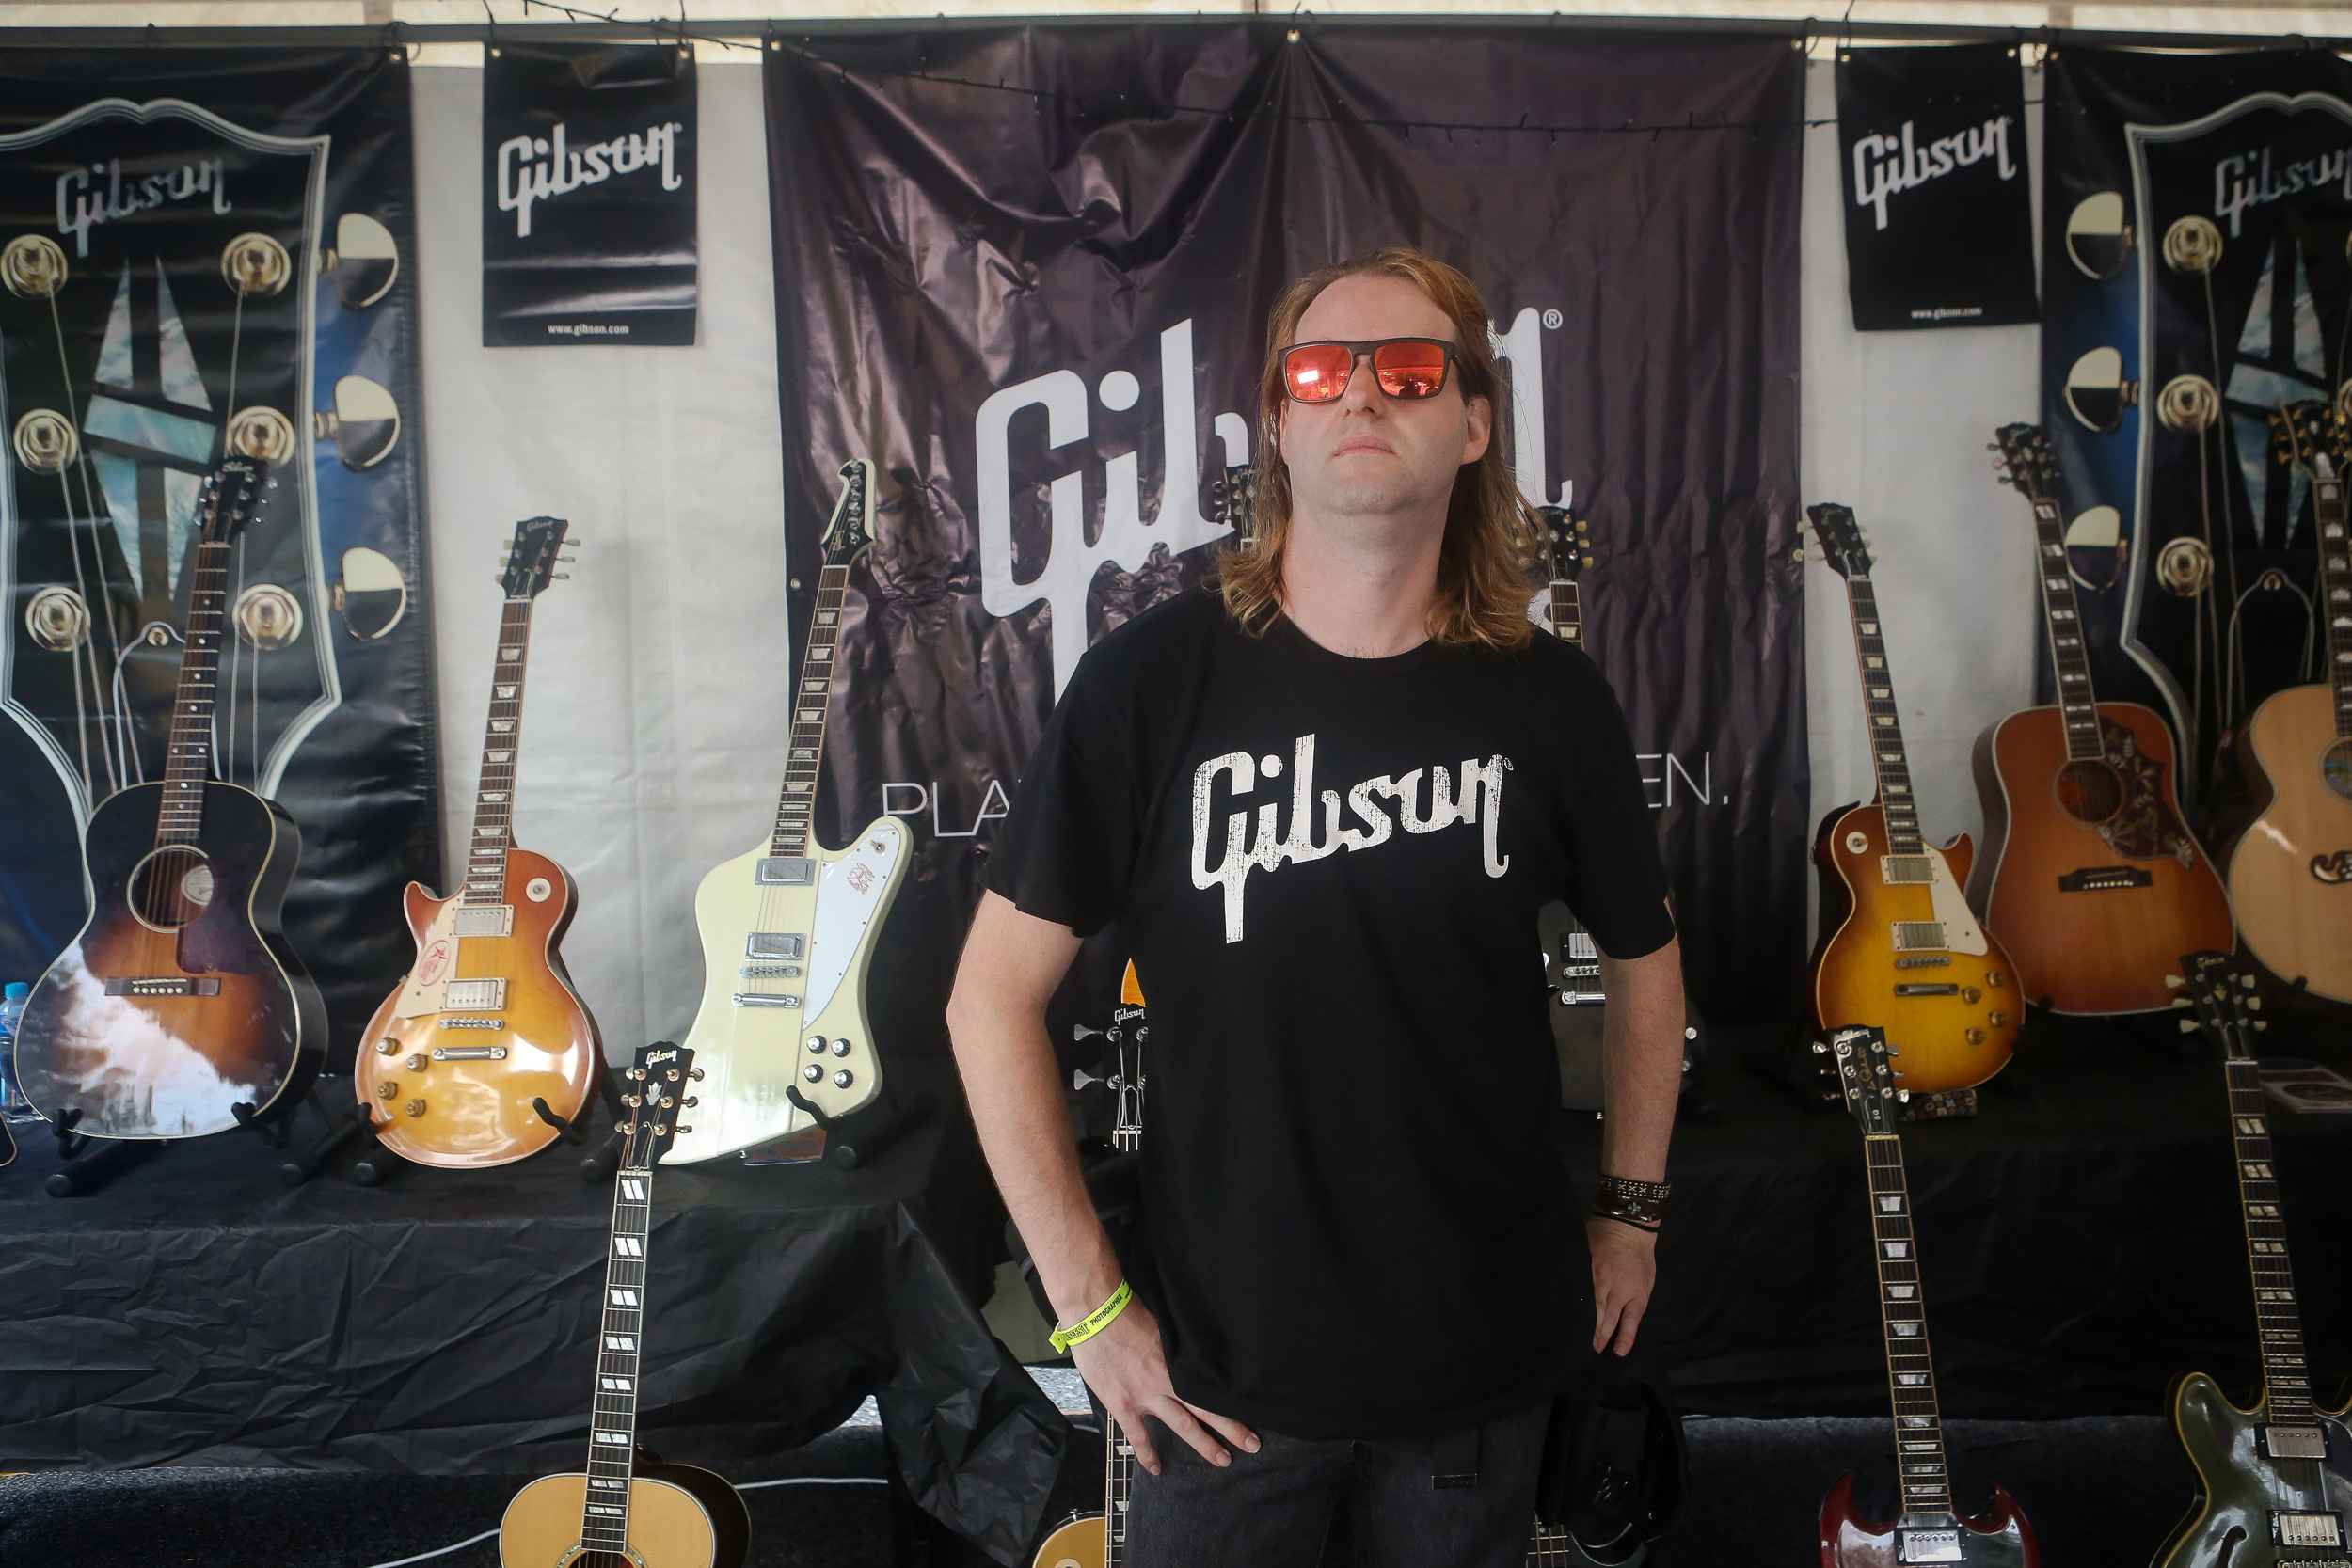 damien stacey, backstage in the gibson tent